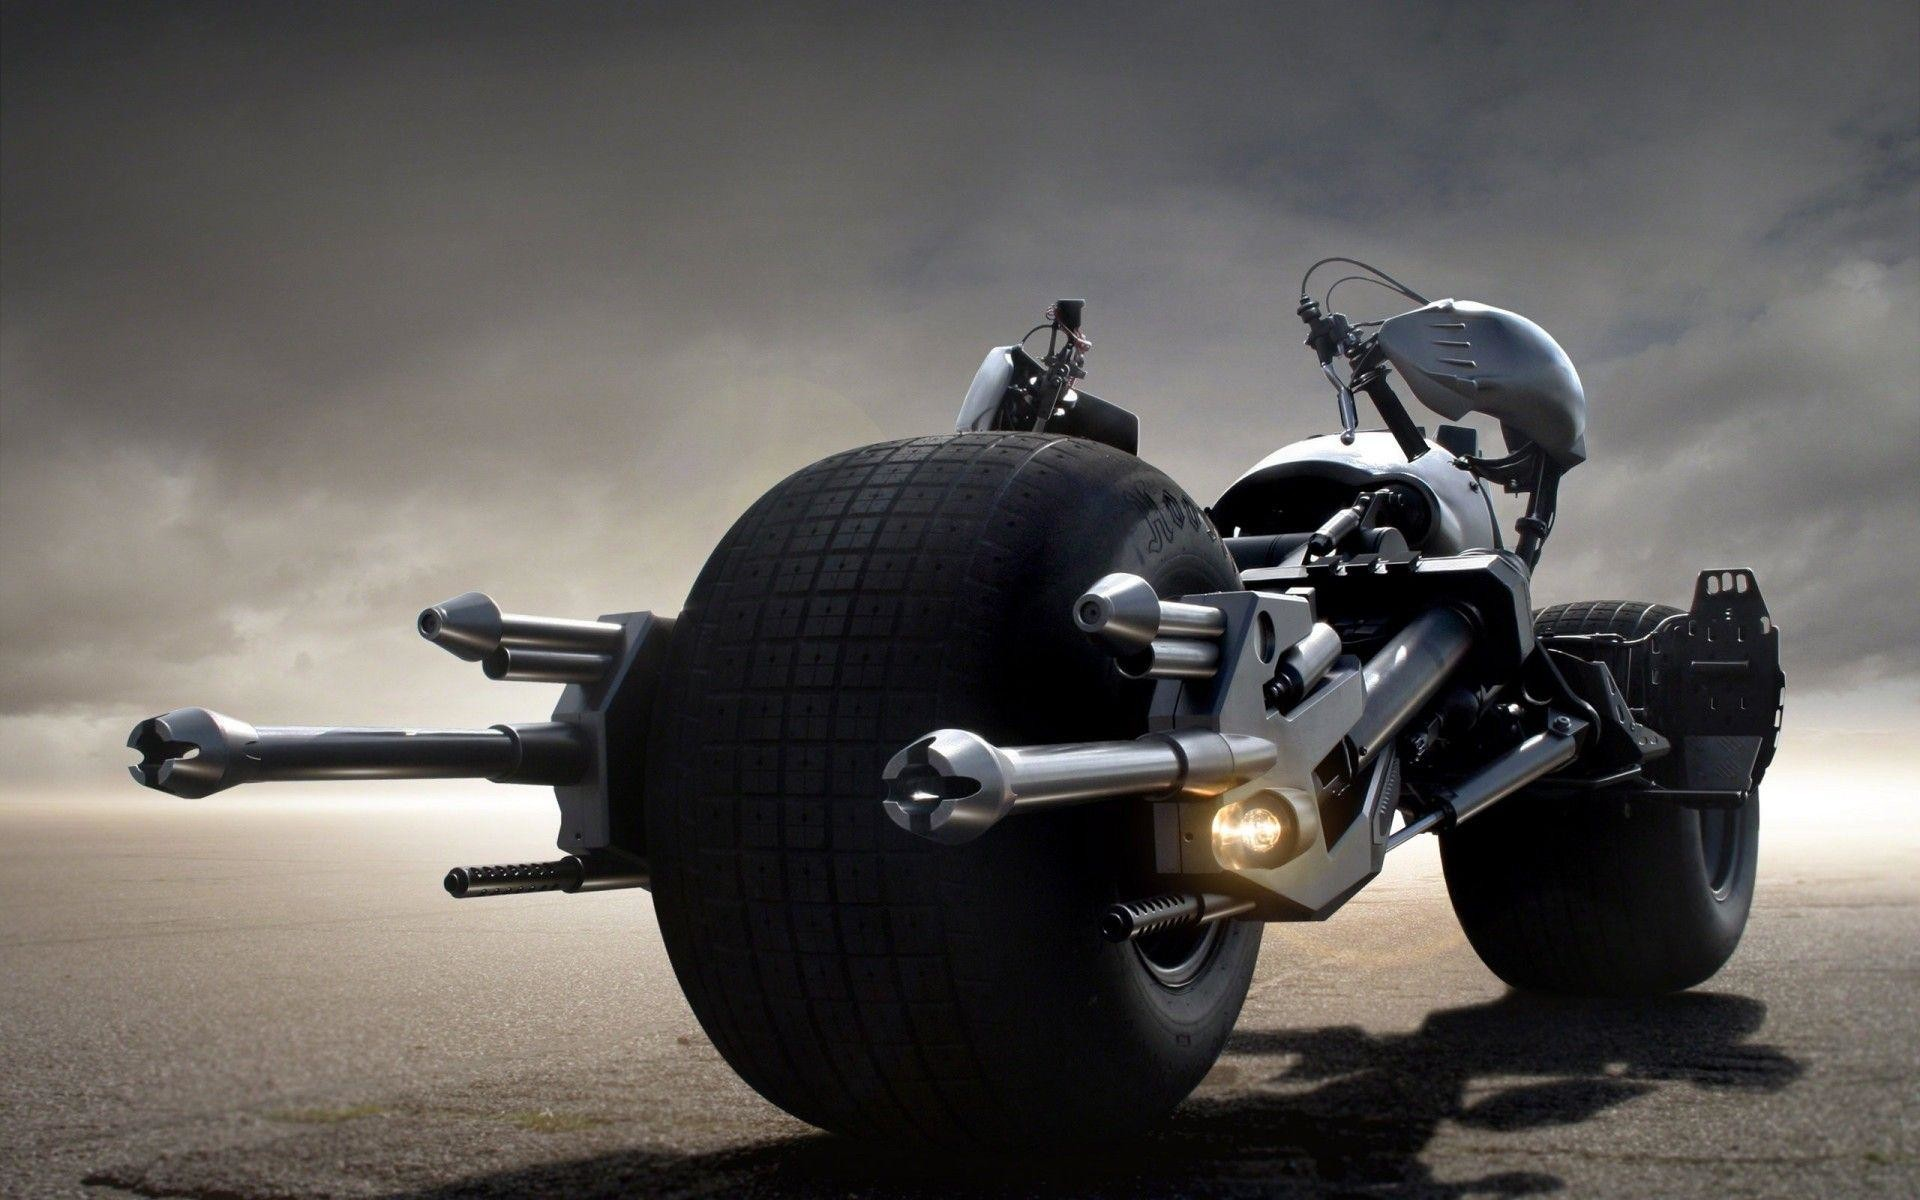 HD Wallpaper Of Batmans Batpod PaperPull 1920x1200